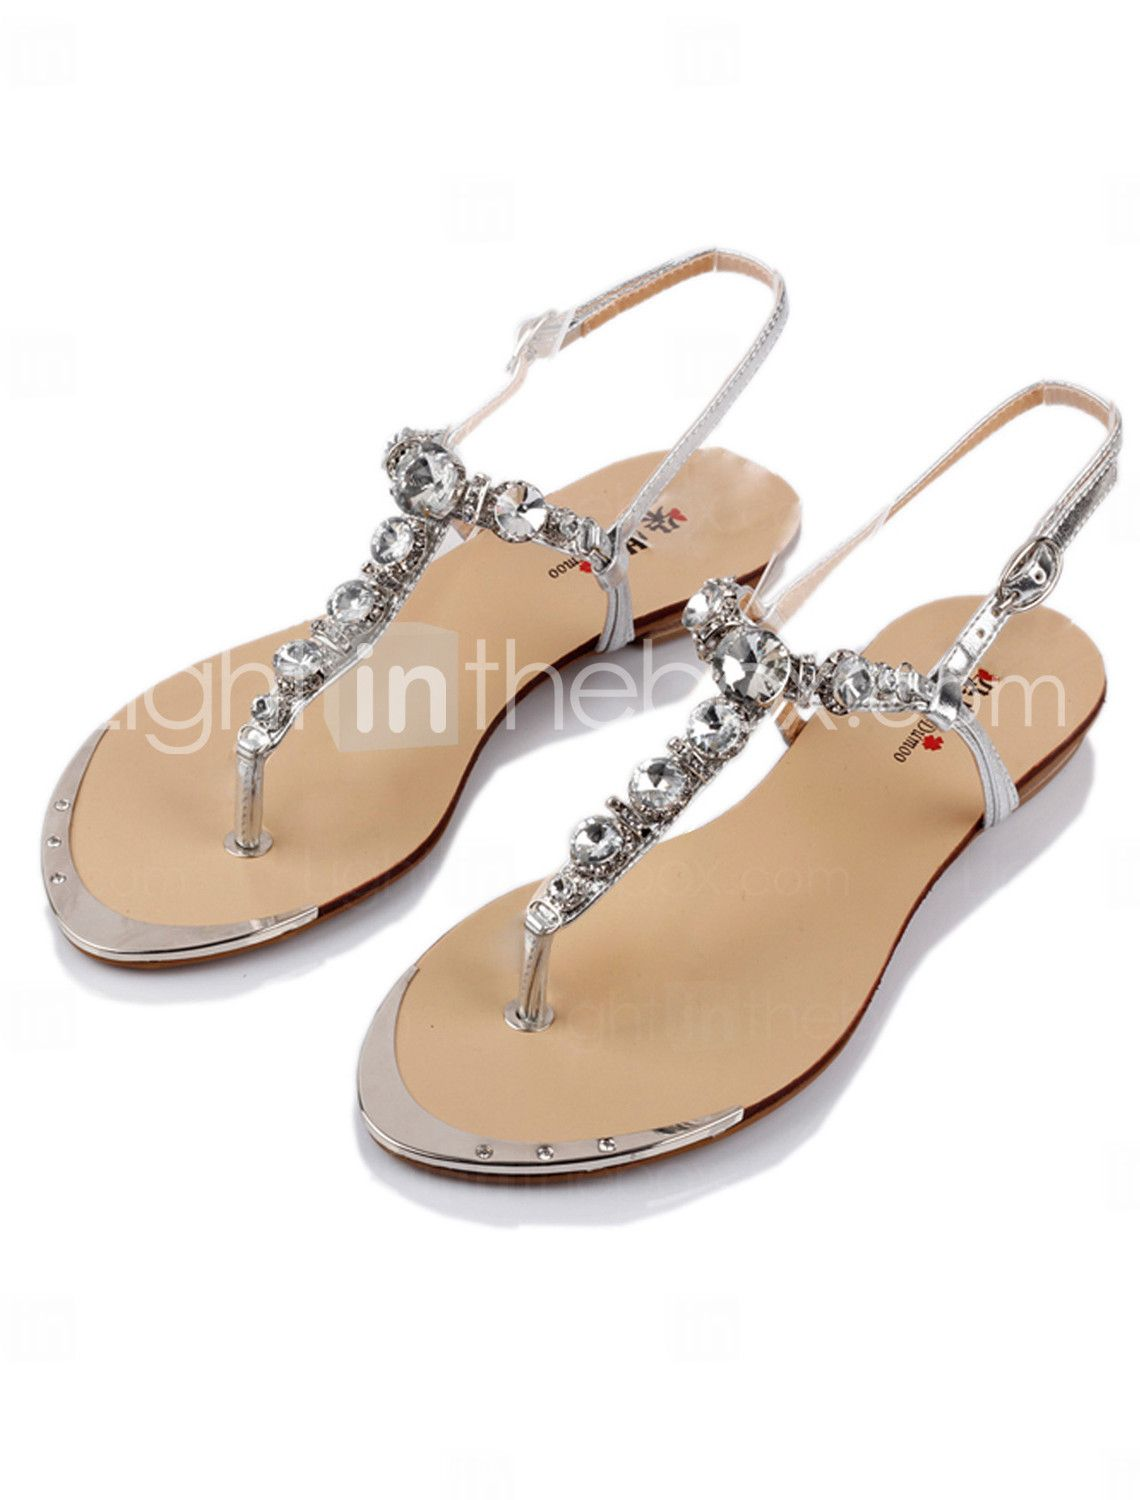 80138d068f309 Leatherette Flats   Sandals Honeymoon Shoes With Rhinestone (More ...